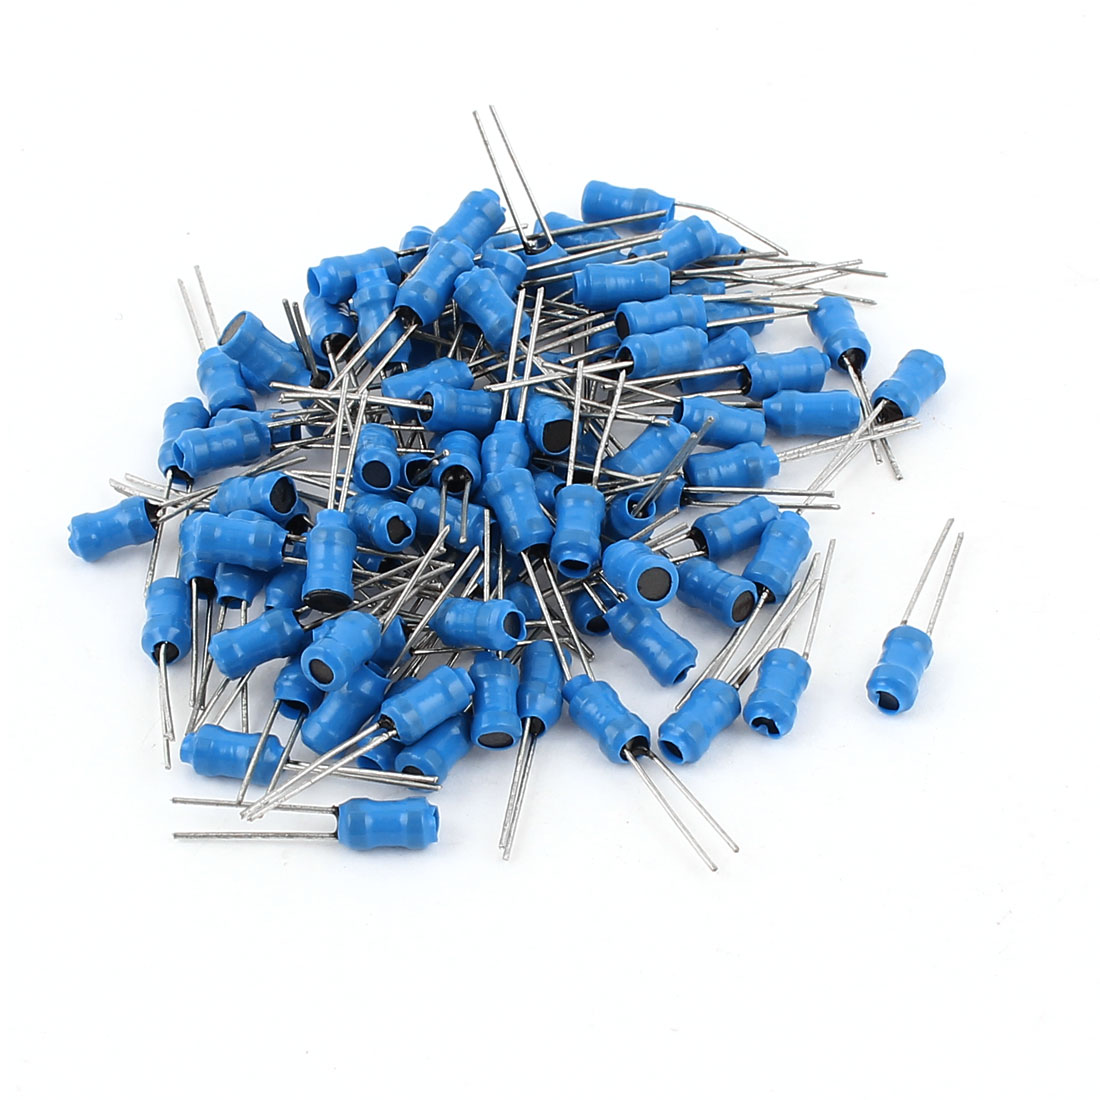 100Pcs 30mH 50mA 4x6mm 10% Tolerance Radial Lead Inductor Blue